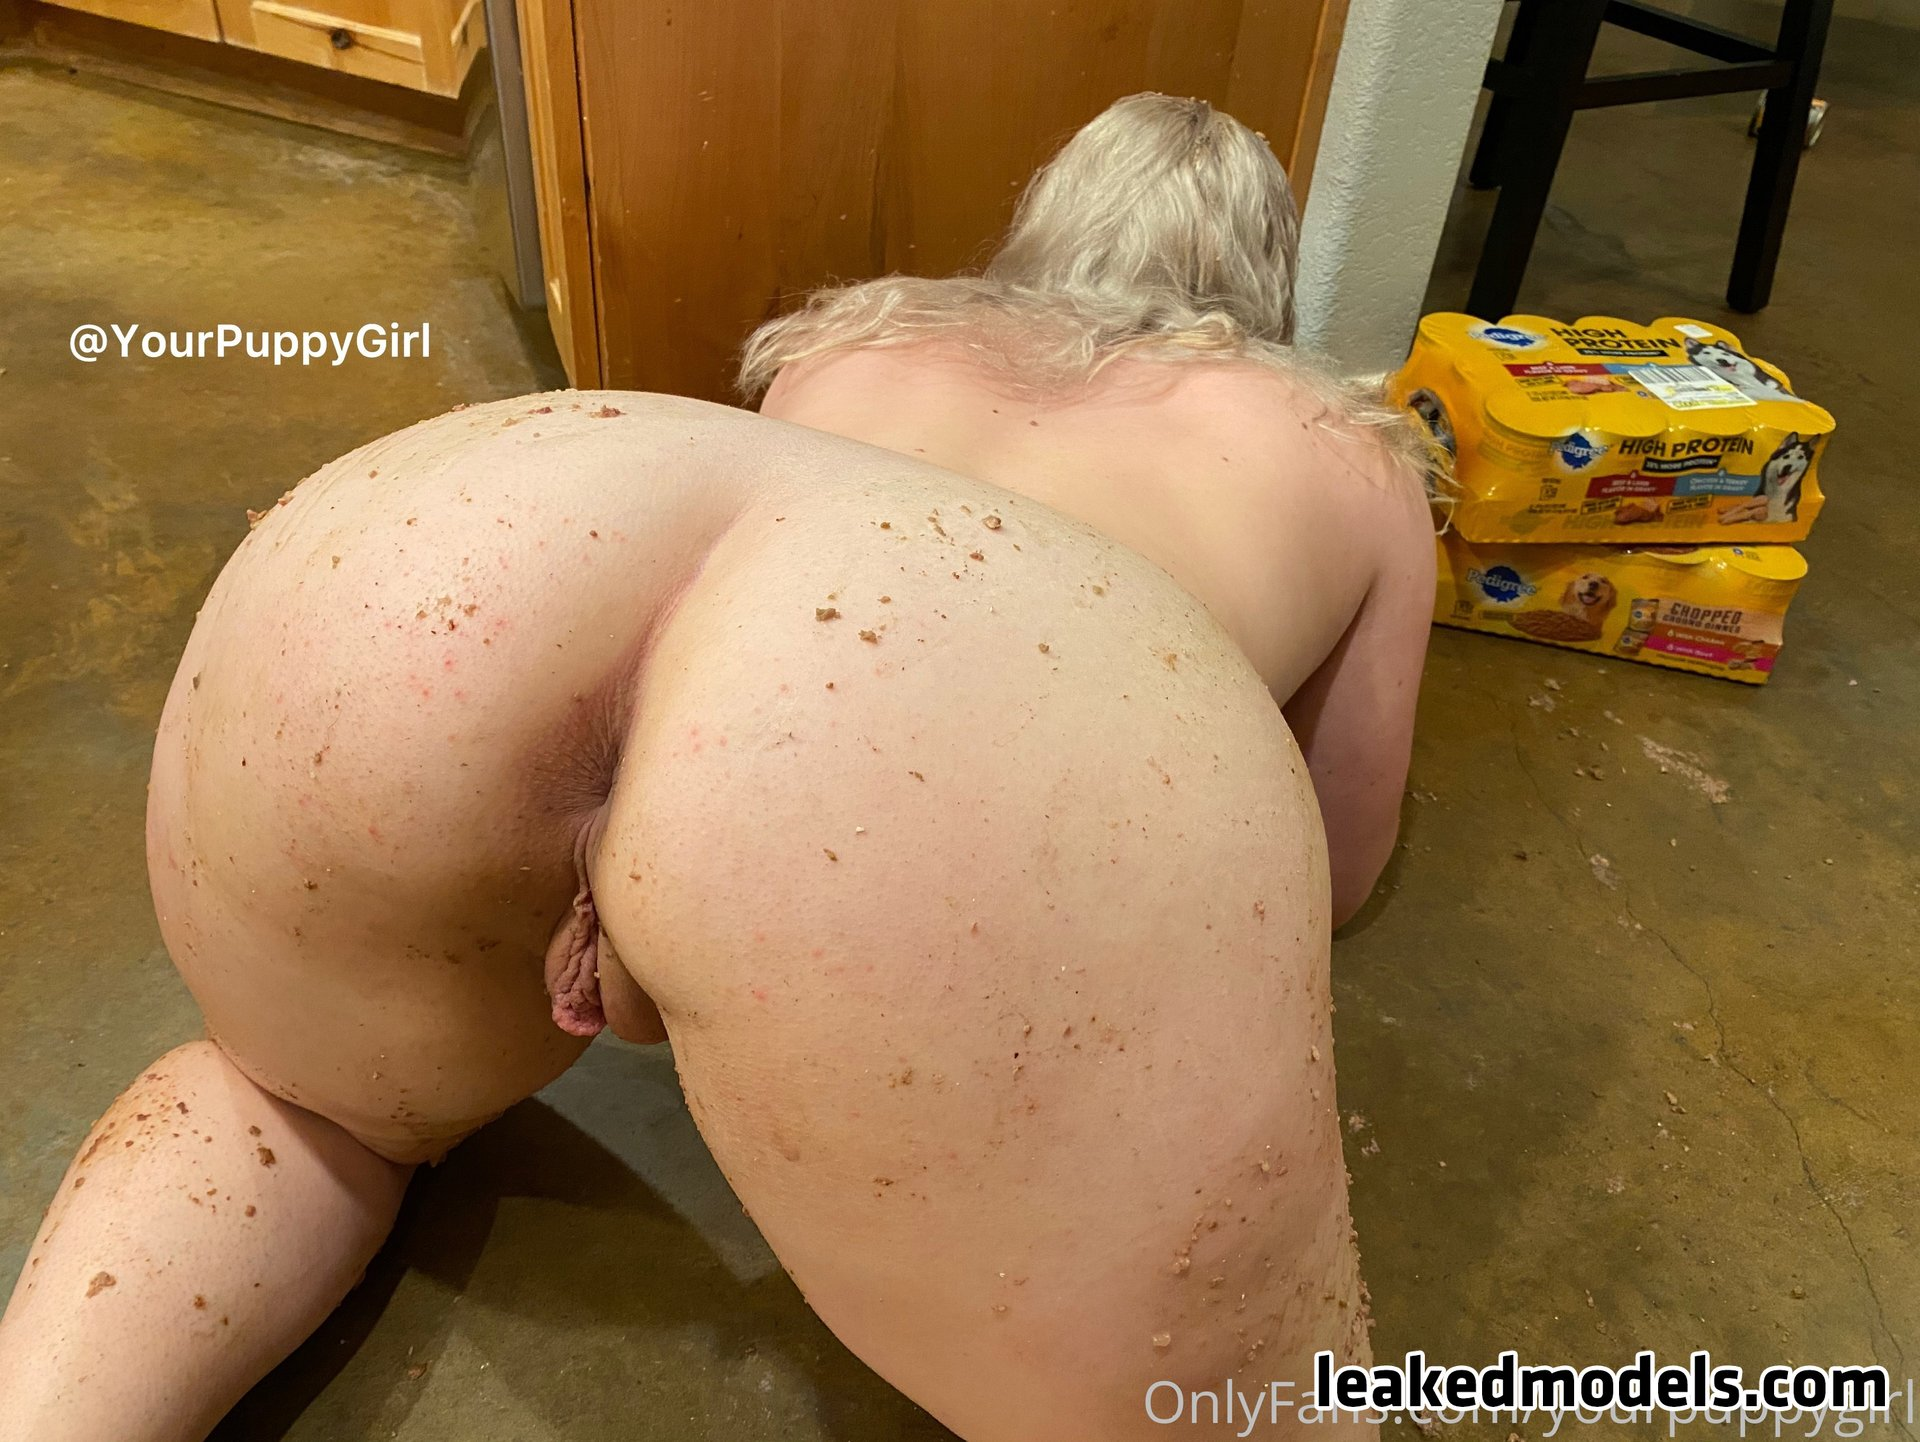 Jenna – yourpuppygirl OnlyFans Leaks (99 Photos and 10 Videos)